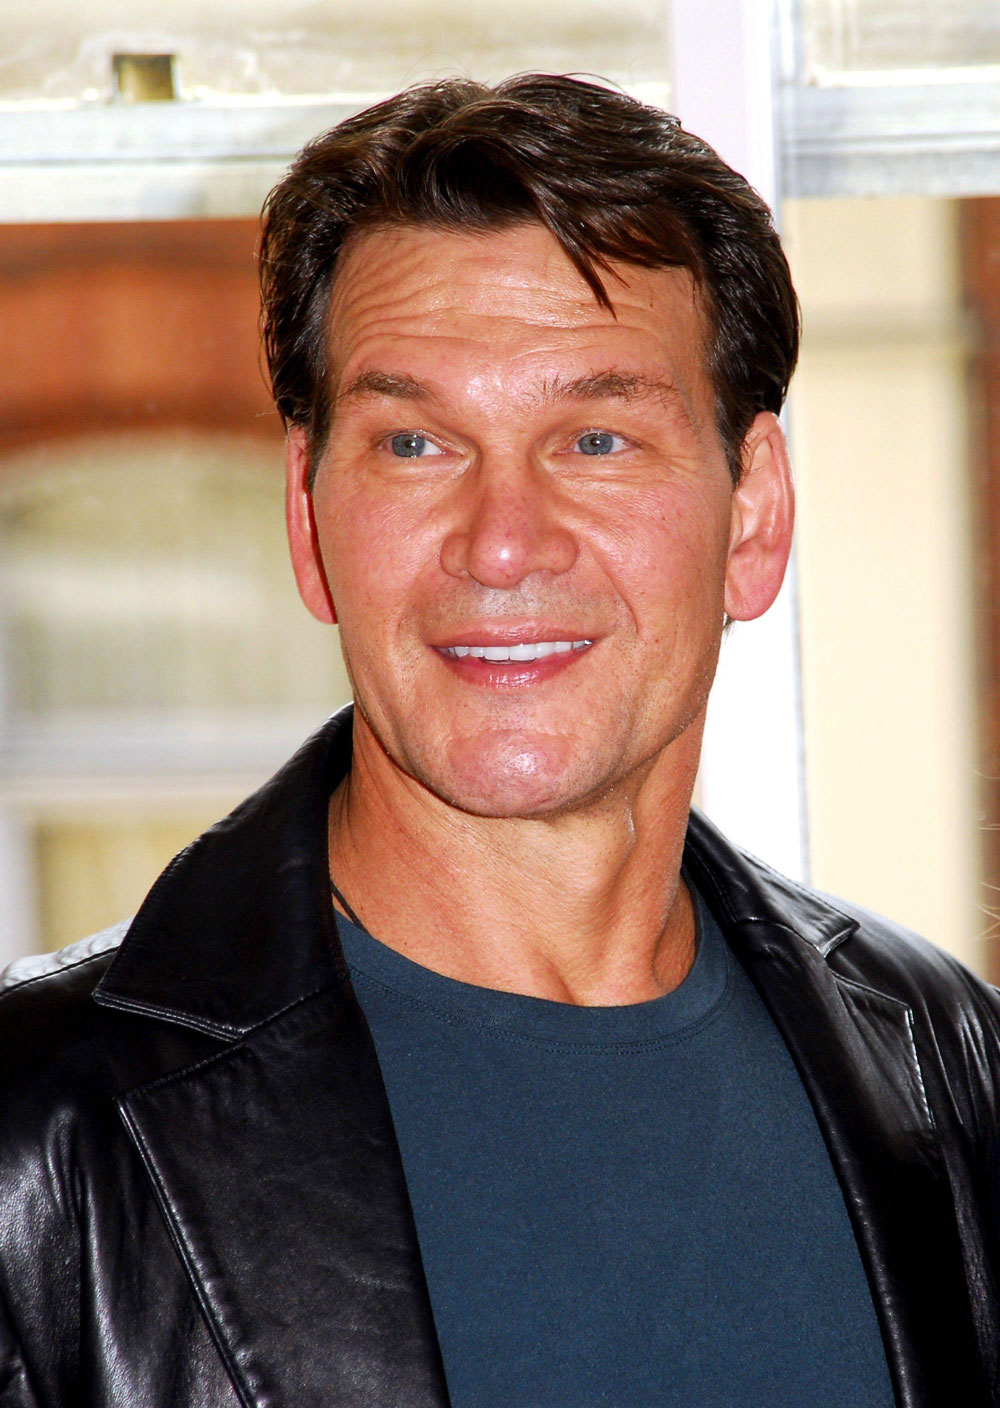 Patrick Swayze dies after 20-month battle with pancreatic cancer